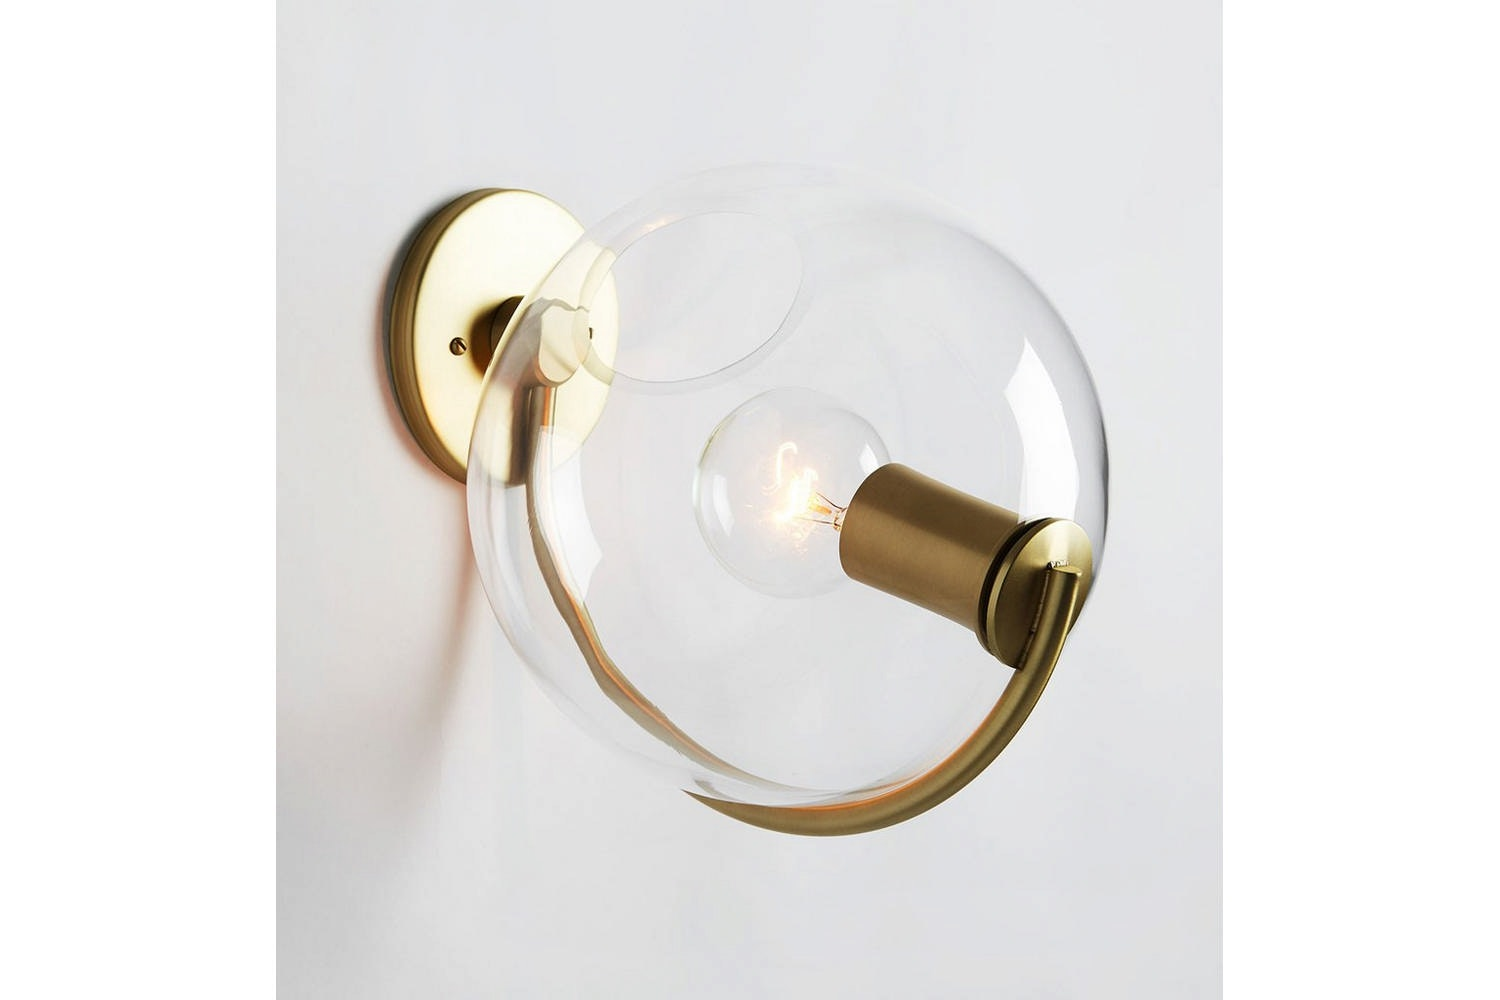 Fiddlehead Sconce by Jason Miller for Roll & Hill